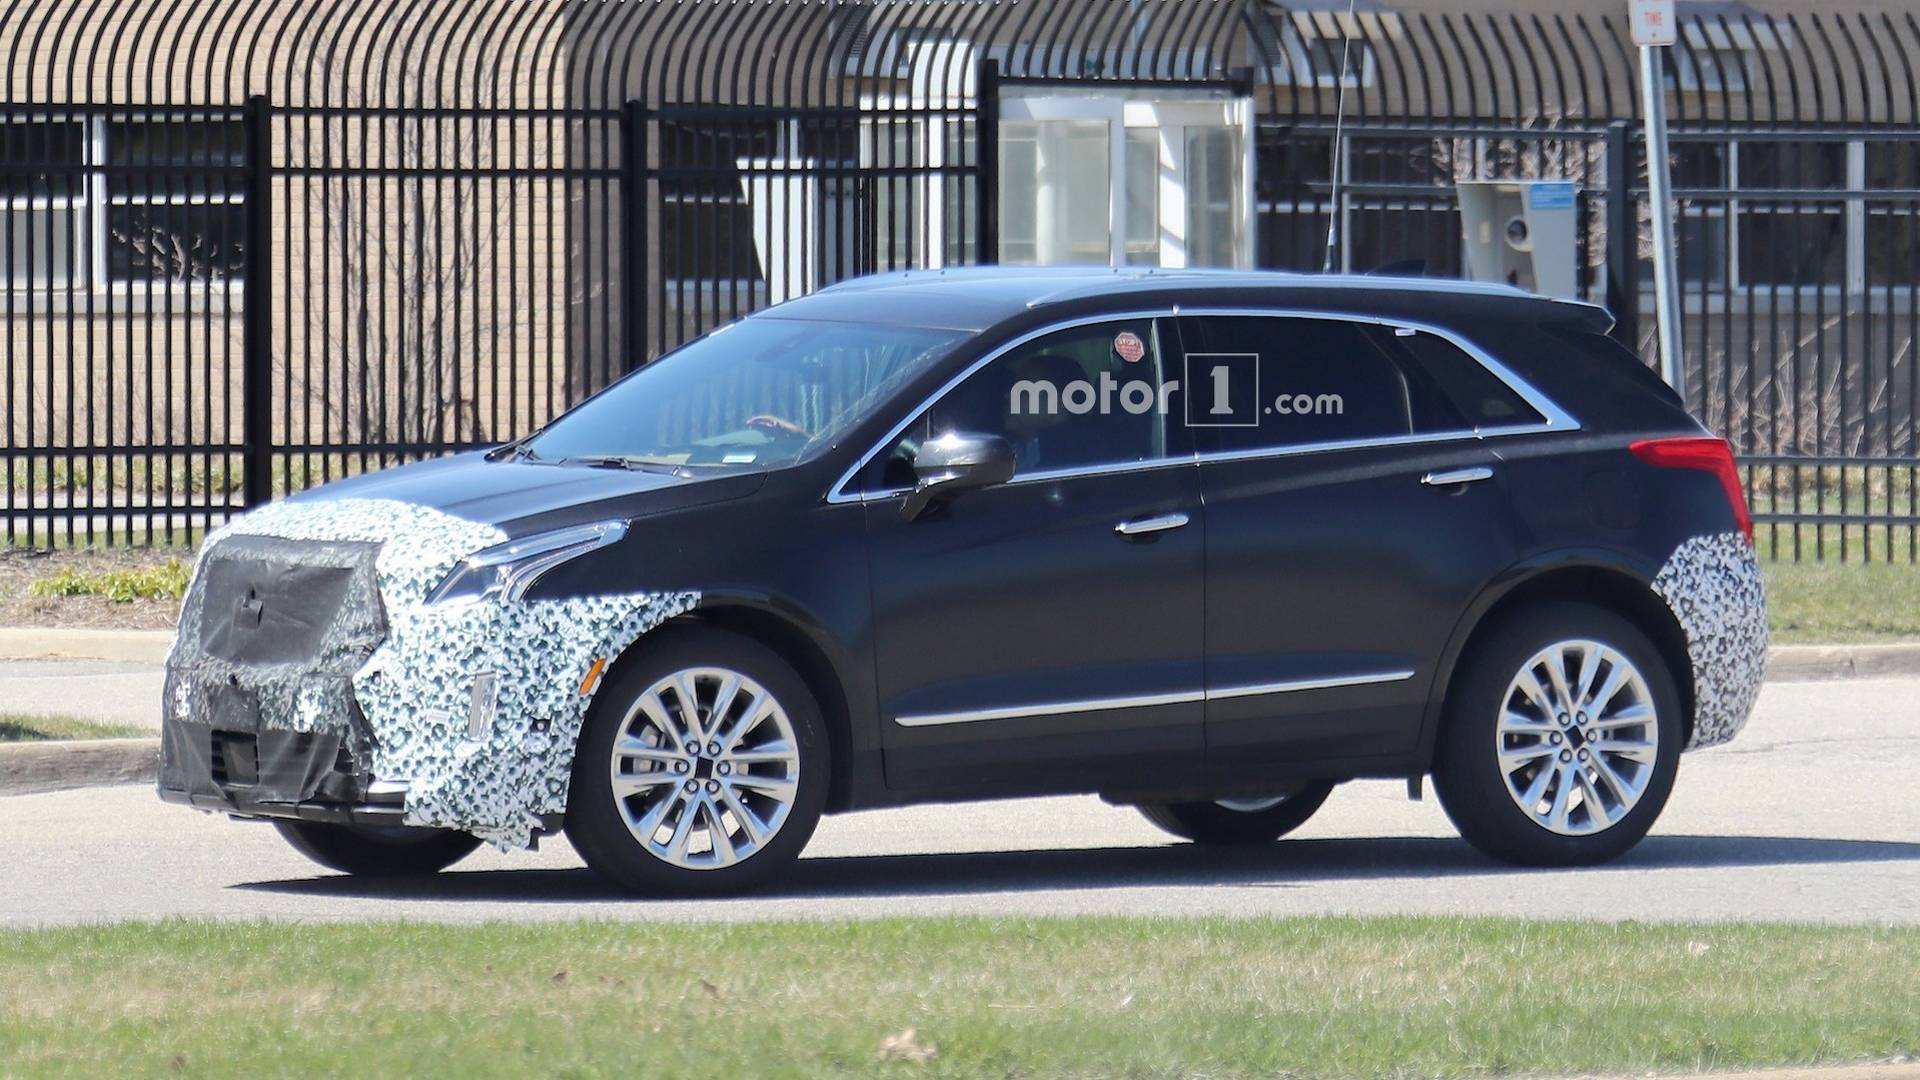 71 Concept of Spy Shots Cadillac Xt5 Specs and Review by Spy Shots Cadillac Xt5